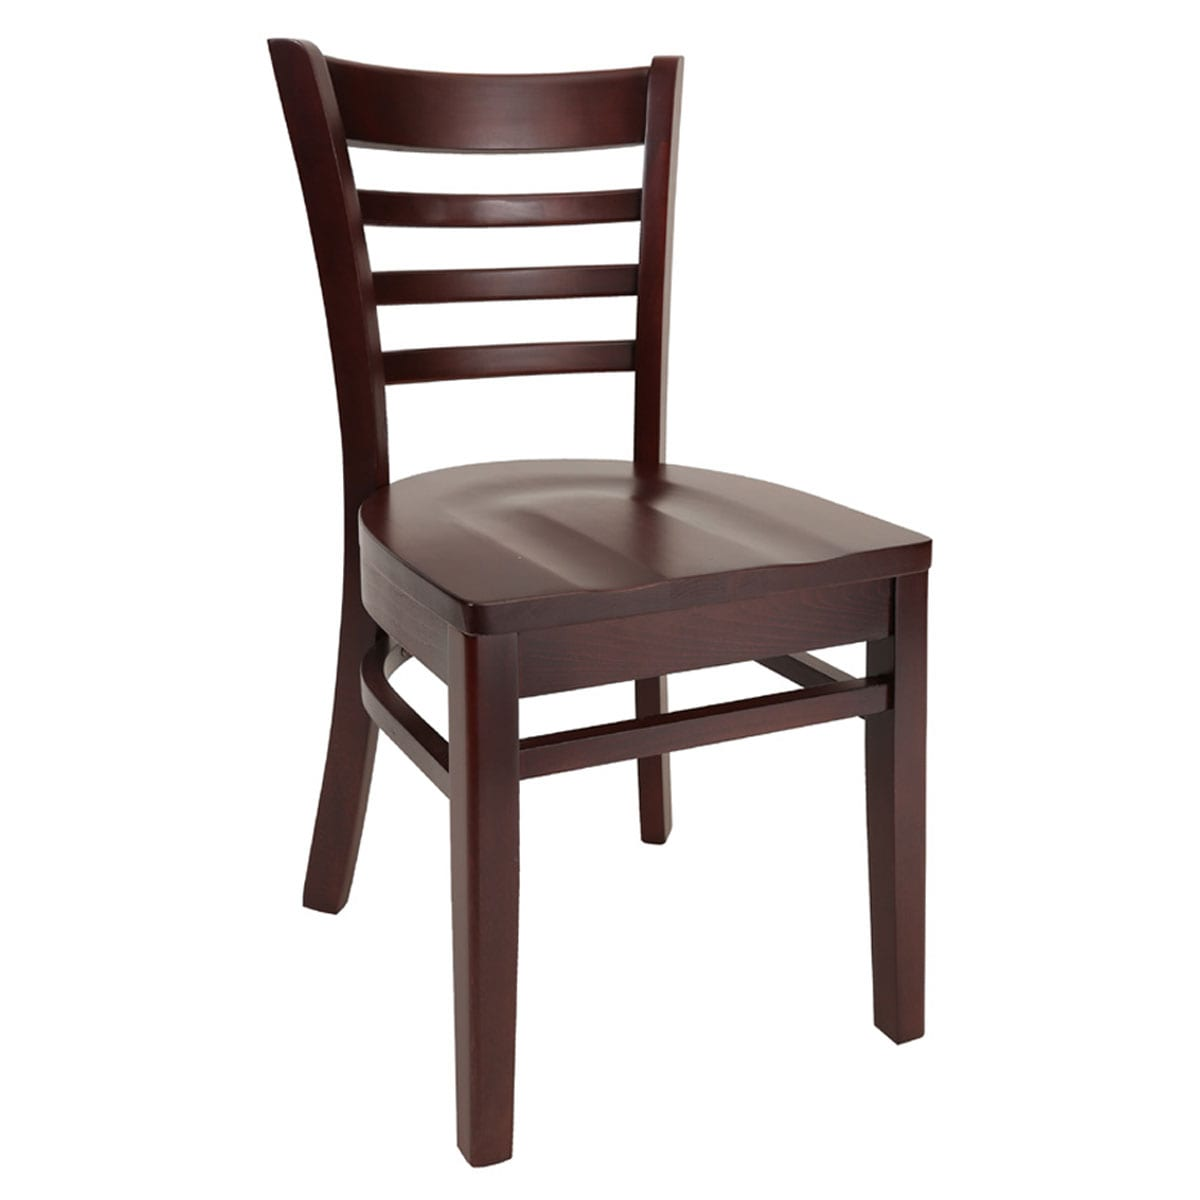 Ladder back barstool venue industries Ladder back chairs